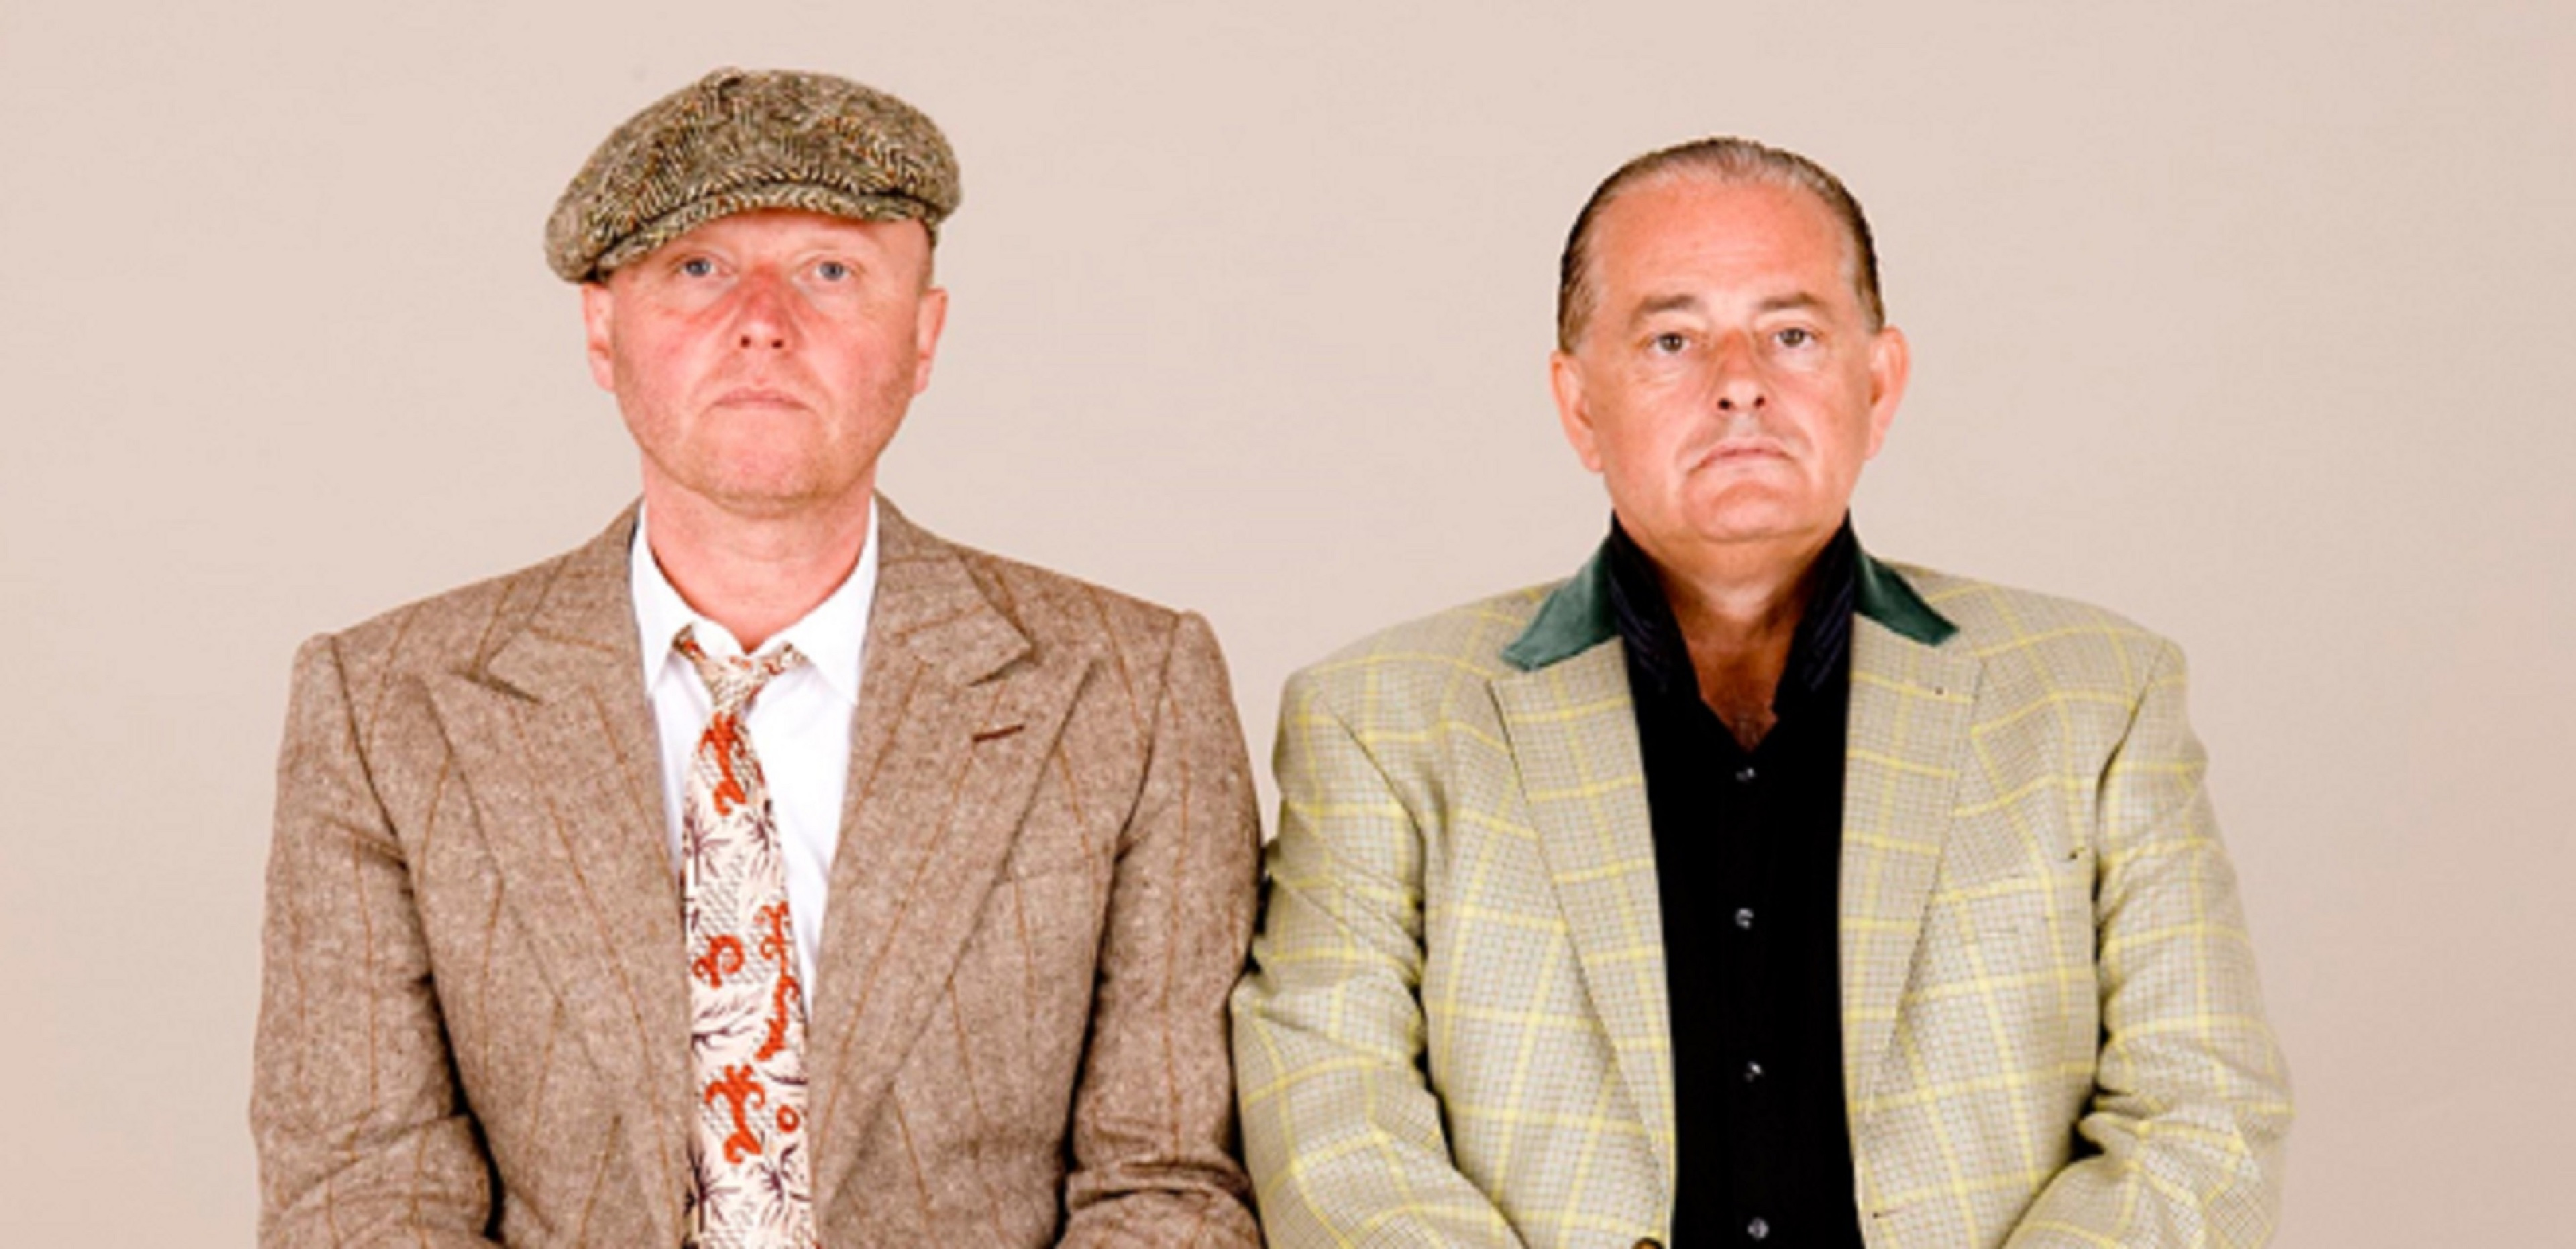 Heaven 17's Glenn Gregory, left, and Martyn Ware, right.